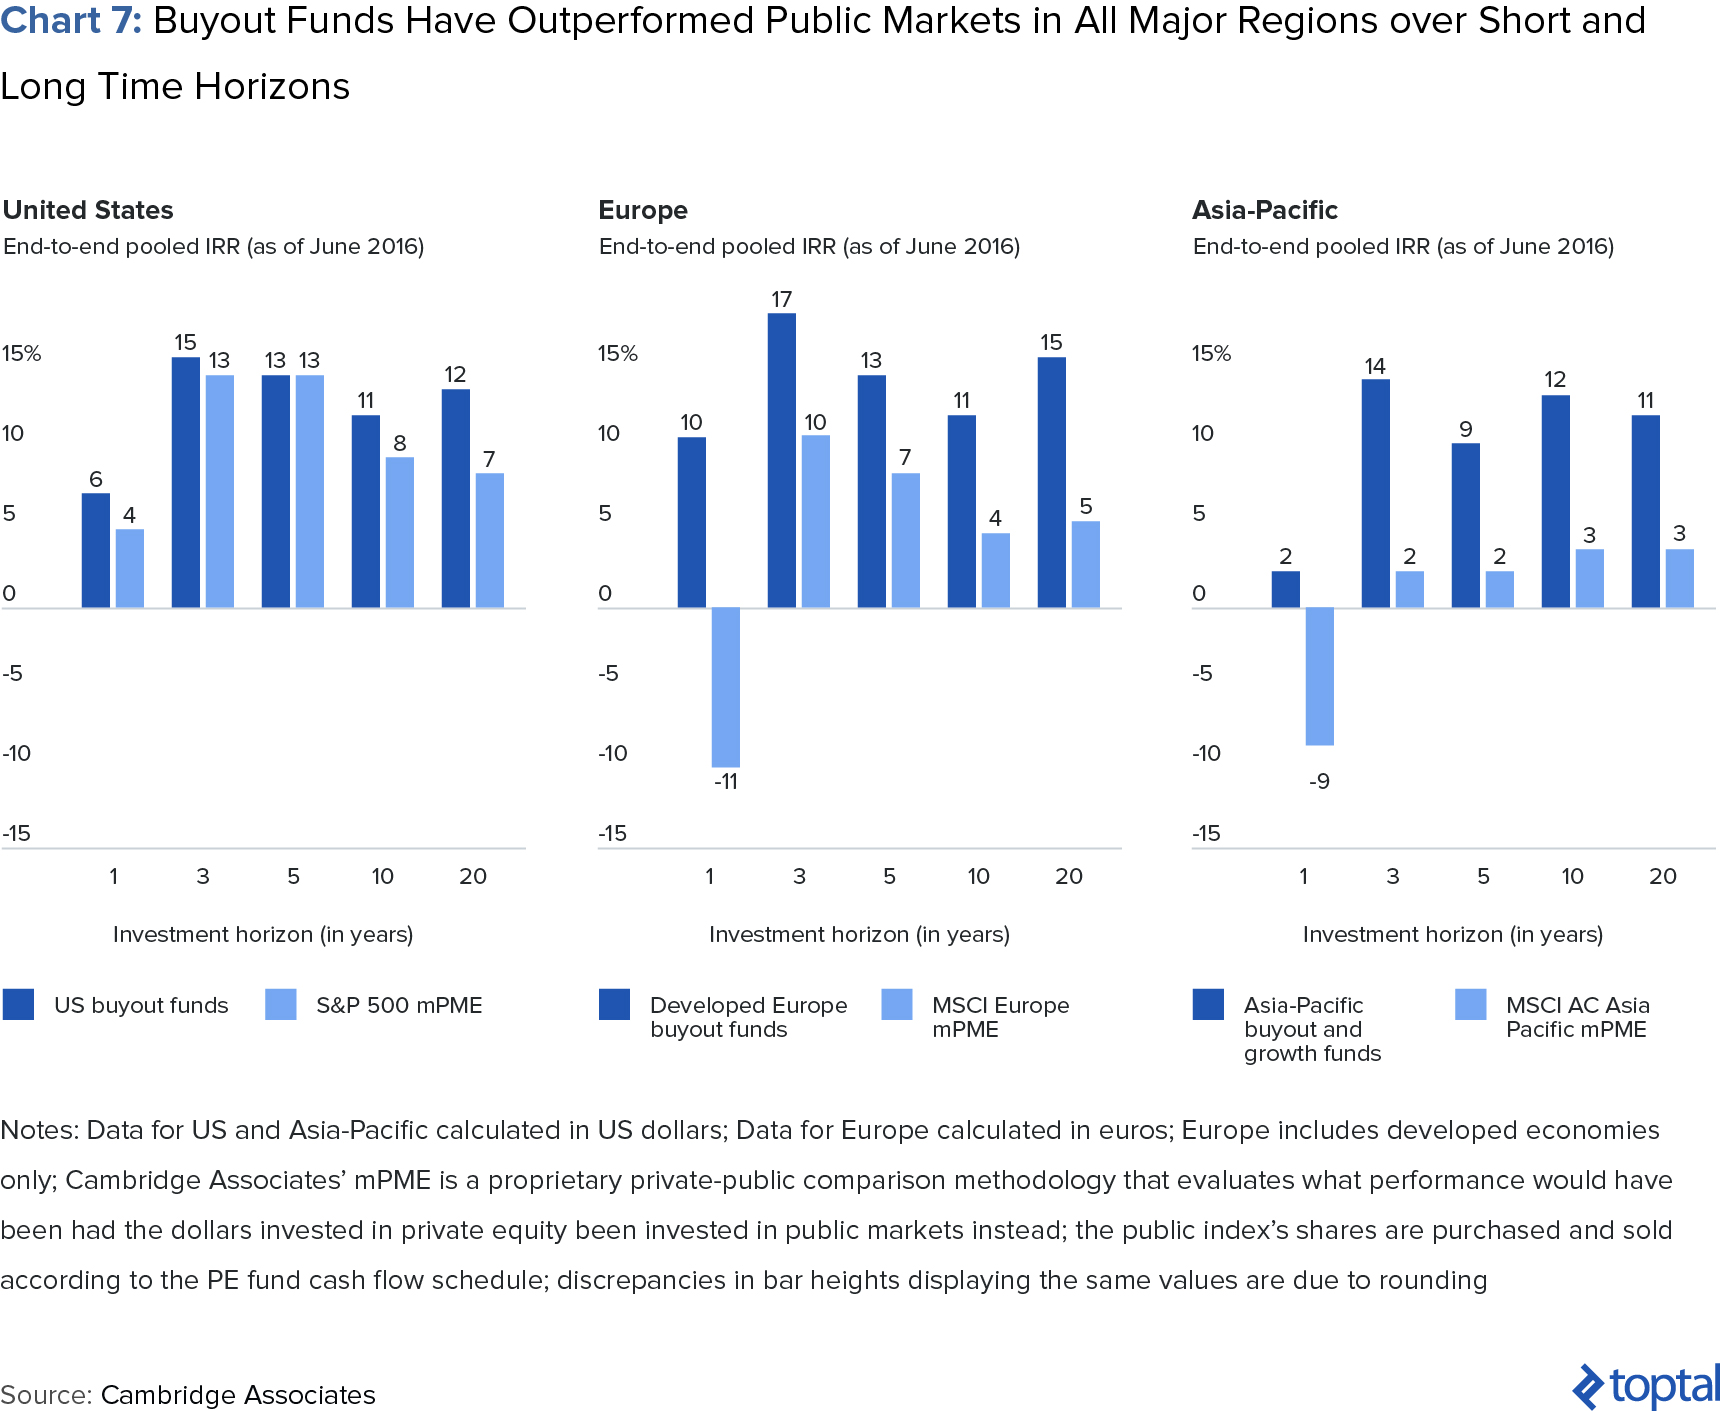 Chart 7: Buyout Funds Have Outperformed Public Markets in All Major Regions over Short and Long Time Horizons